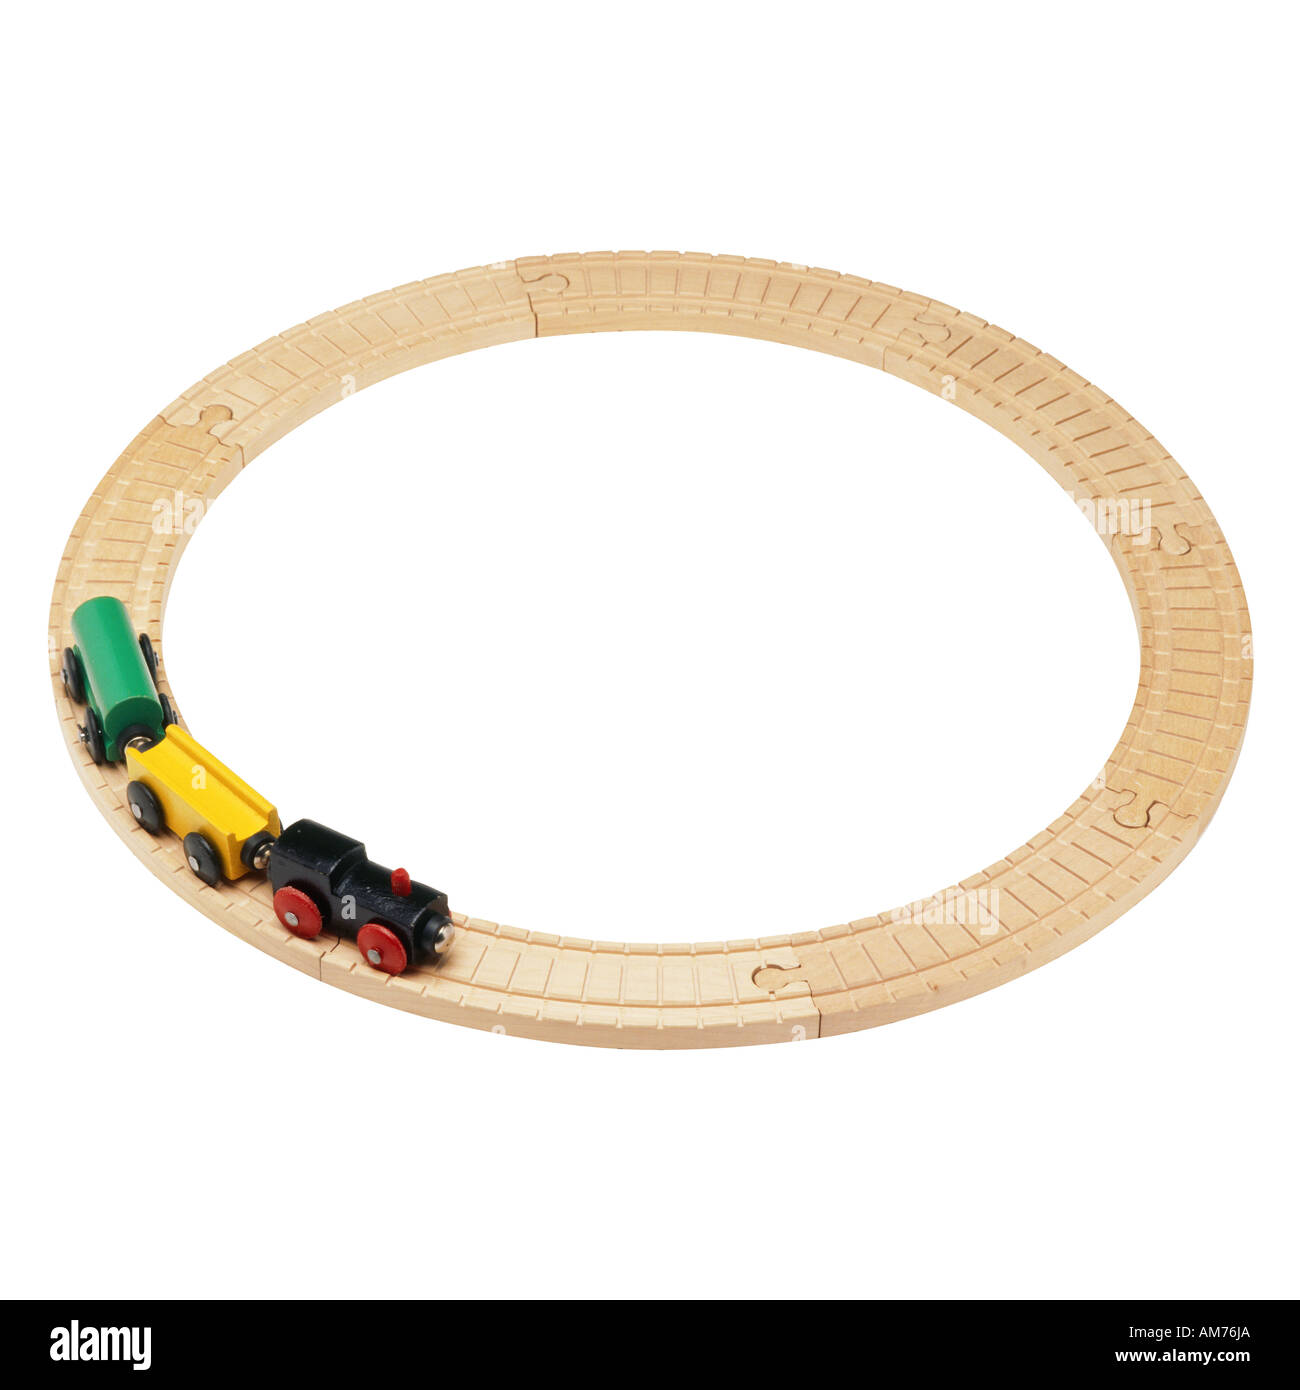 A toy train and train tracks - Stock Image